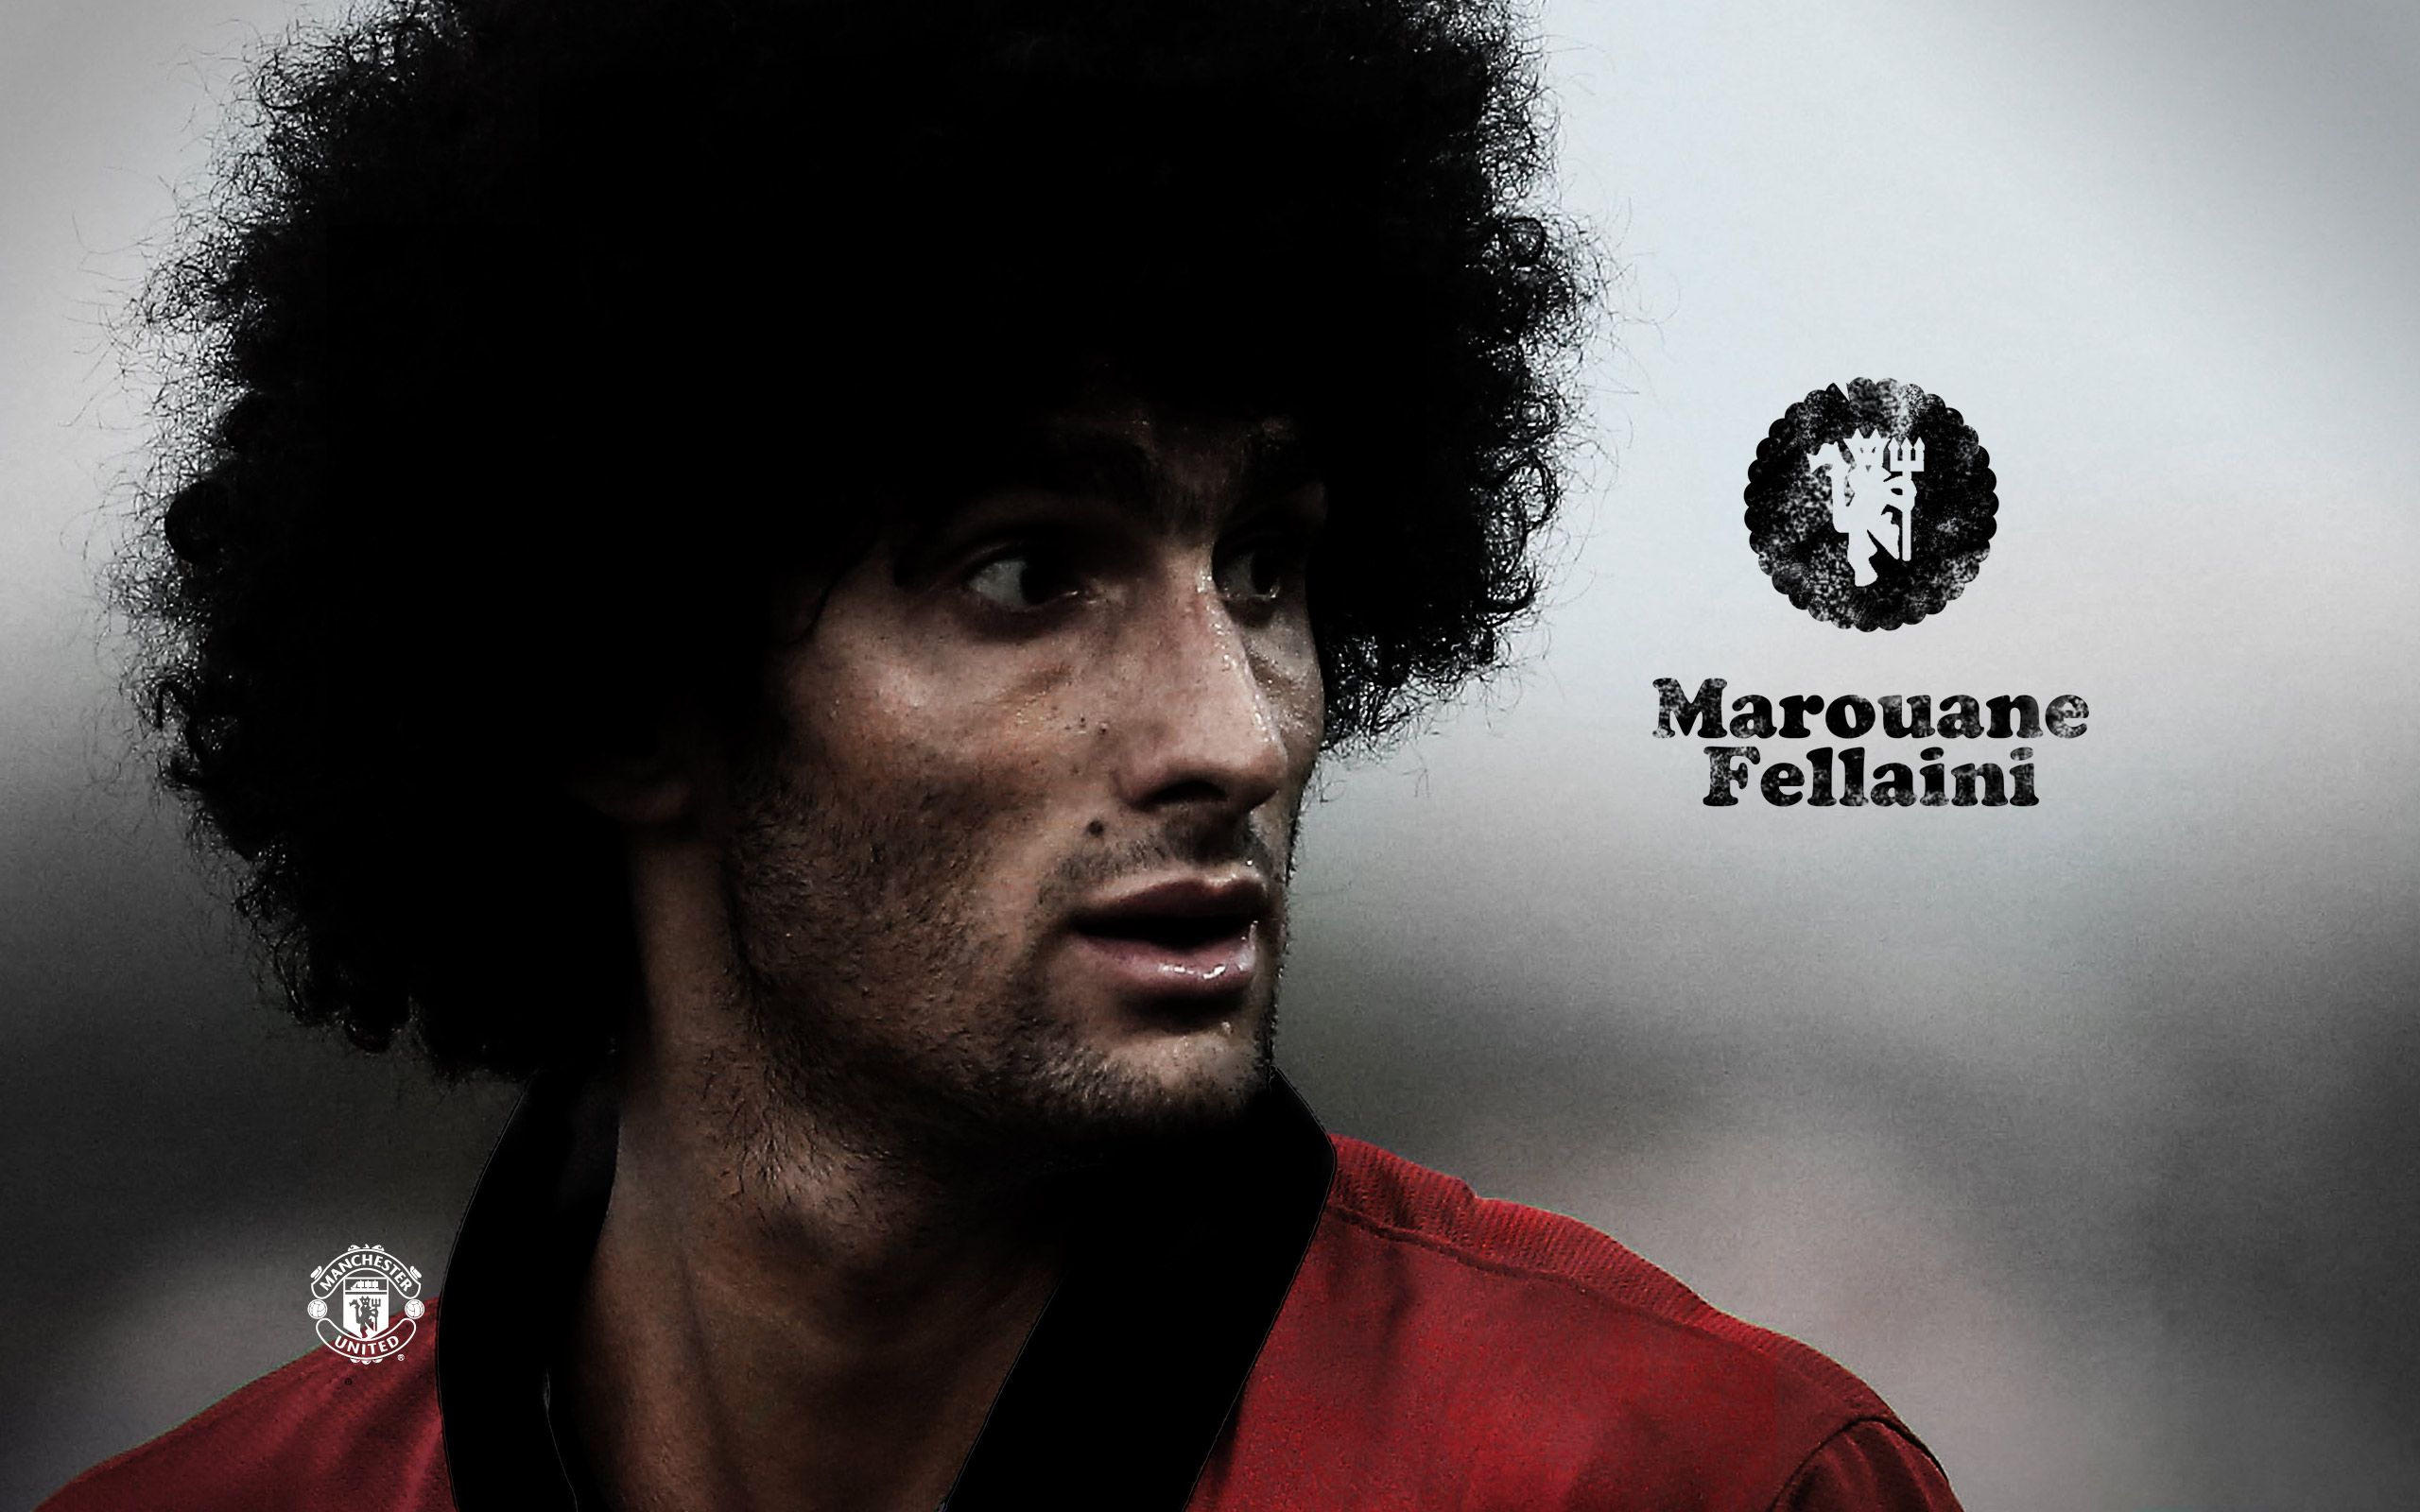 Marouane Fellaini (MAN UTD)